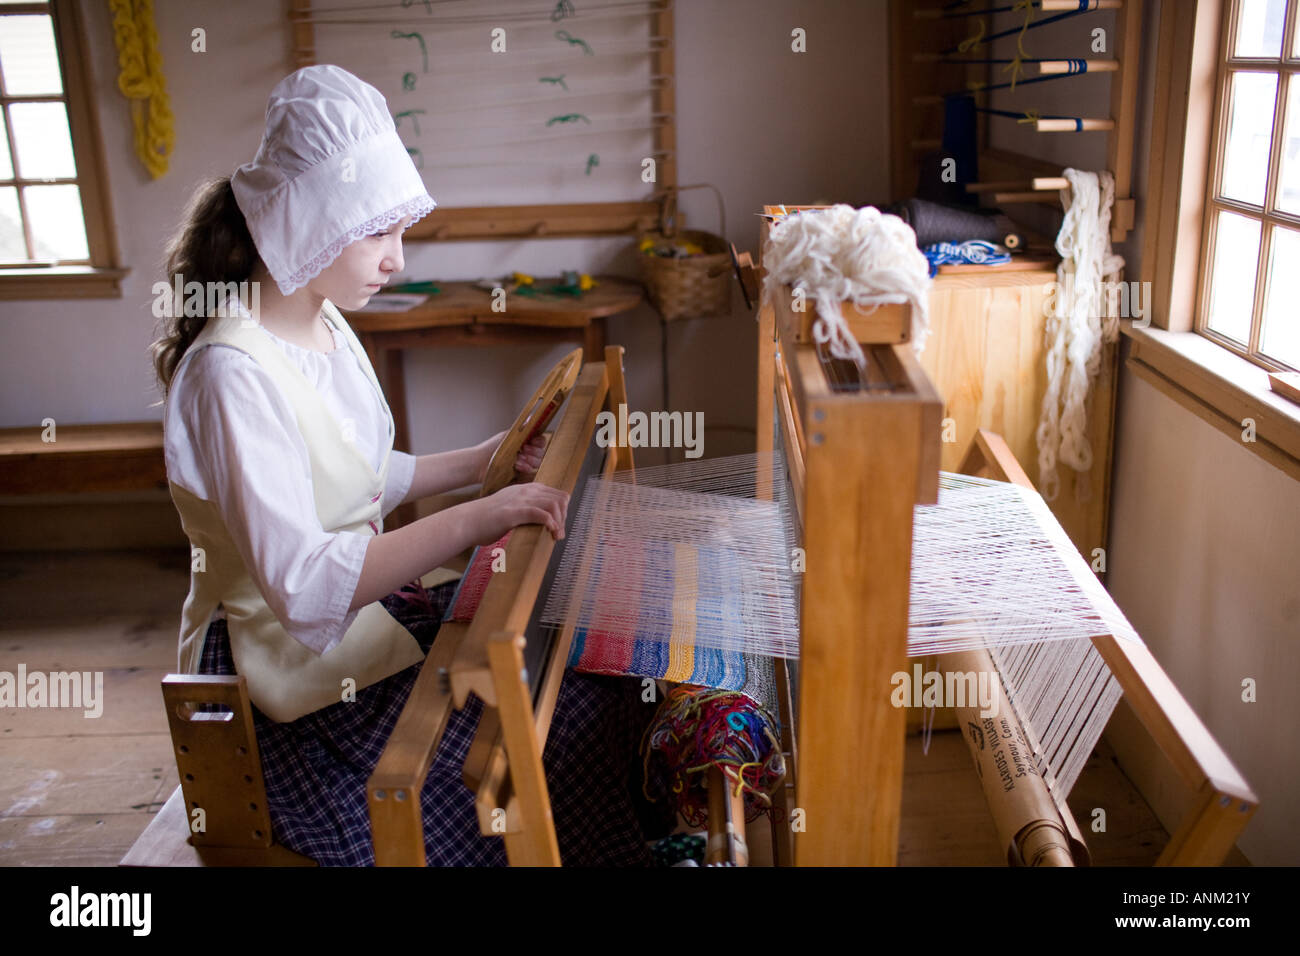 A young girl dressed in period garb demonstrates weaving at the David Humphry House in Ansonia Connecticut, USA - Stock Image